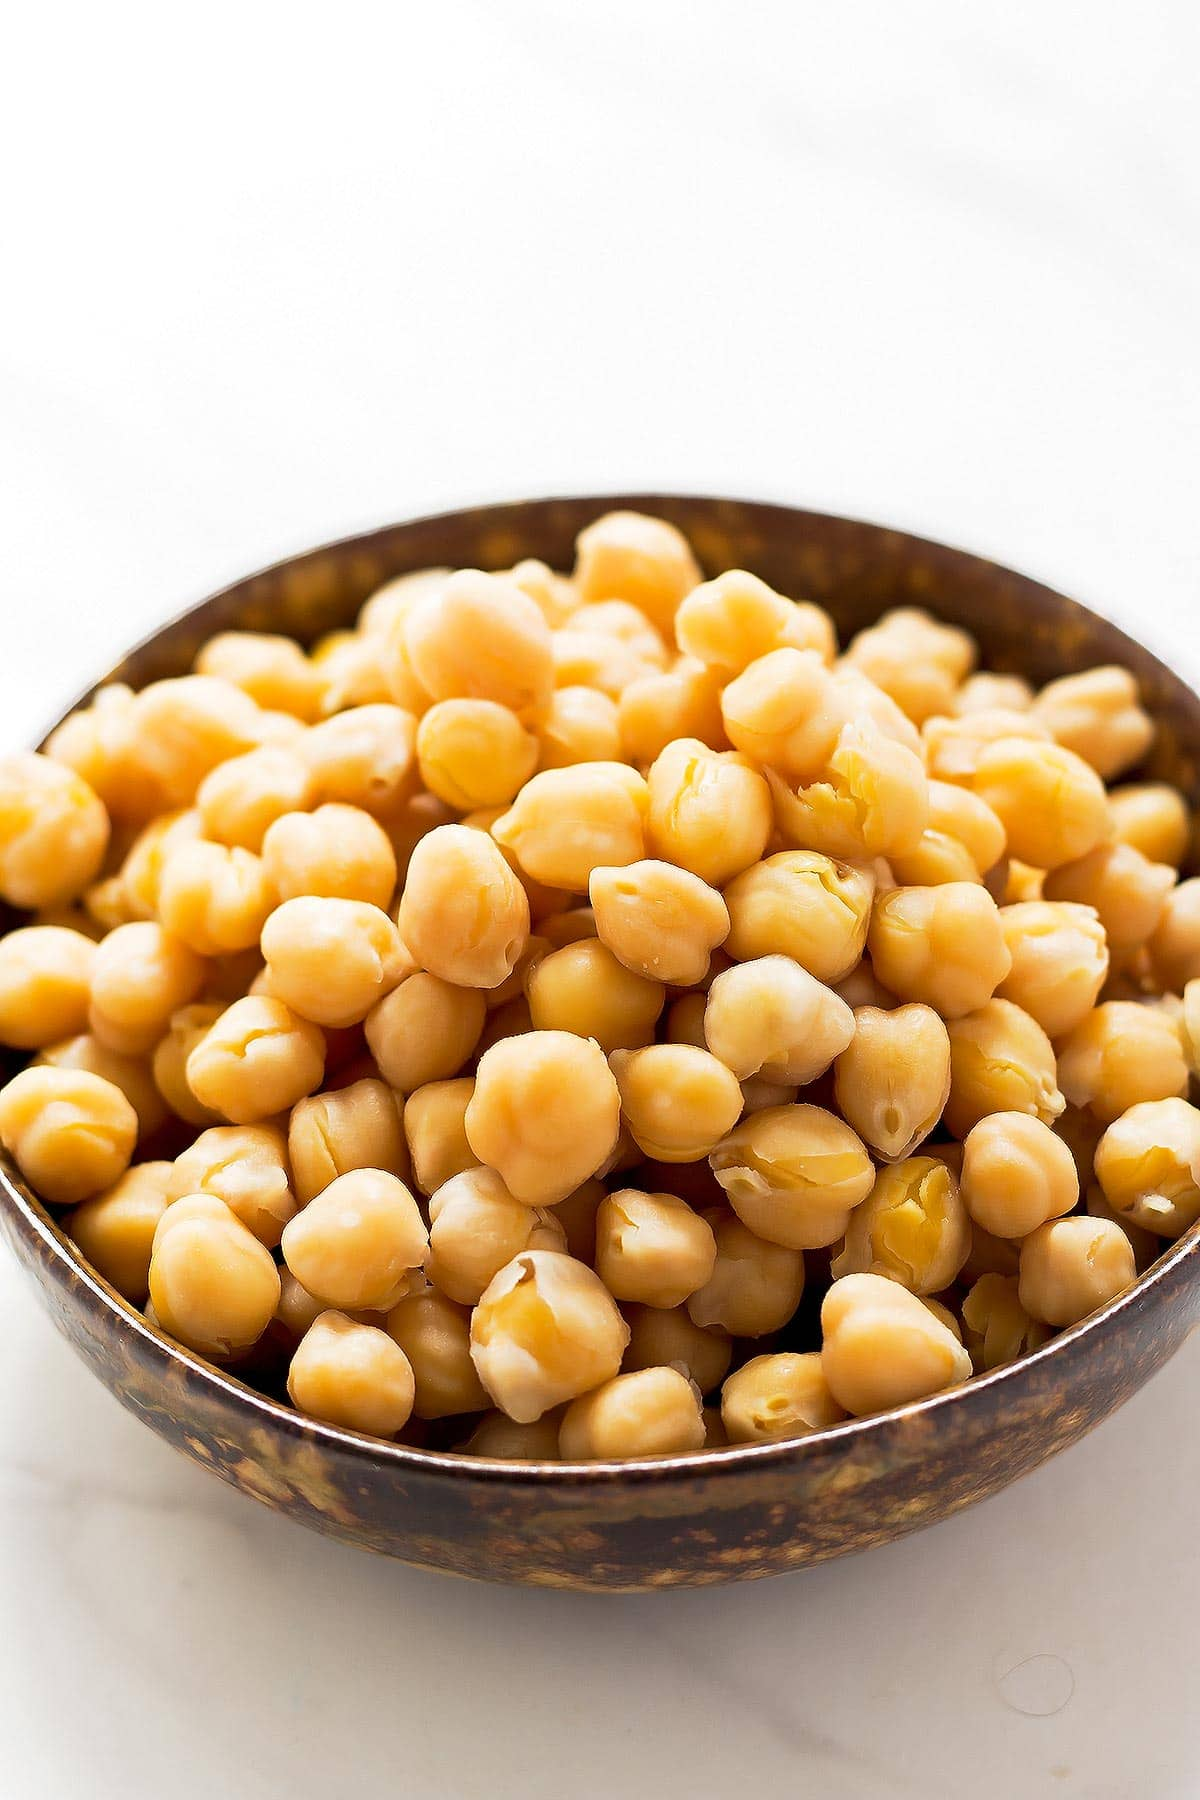 Cooked Chickpeas in bowl